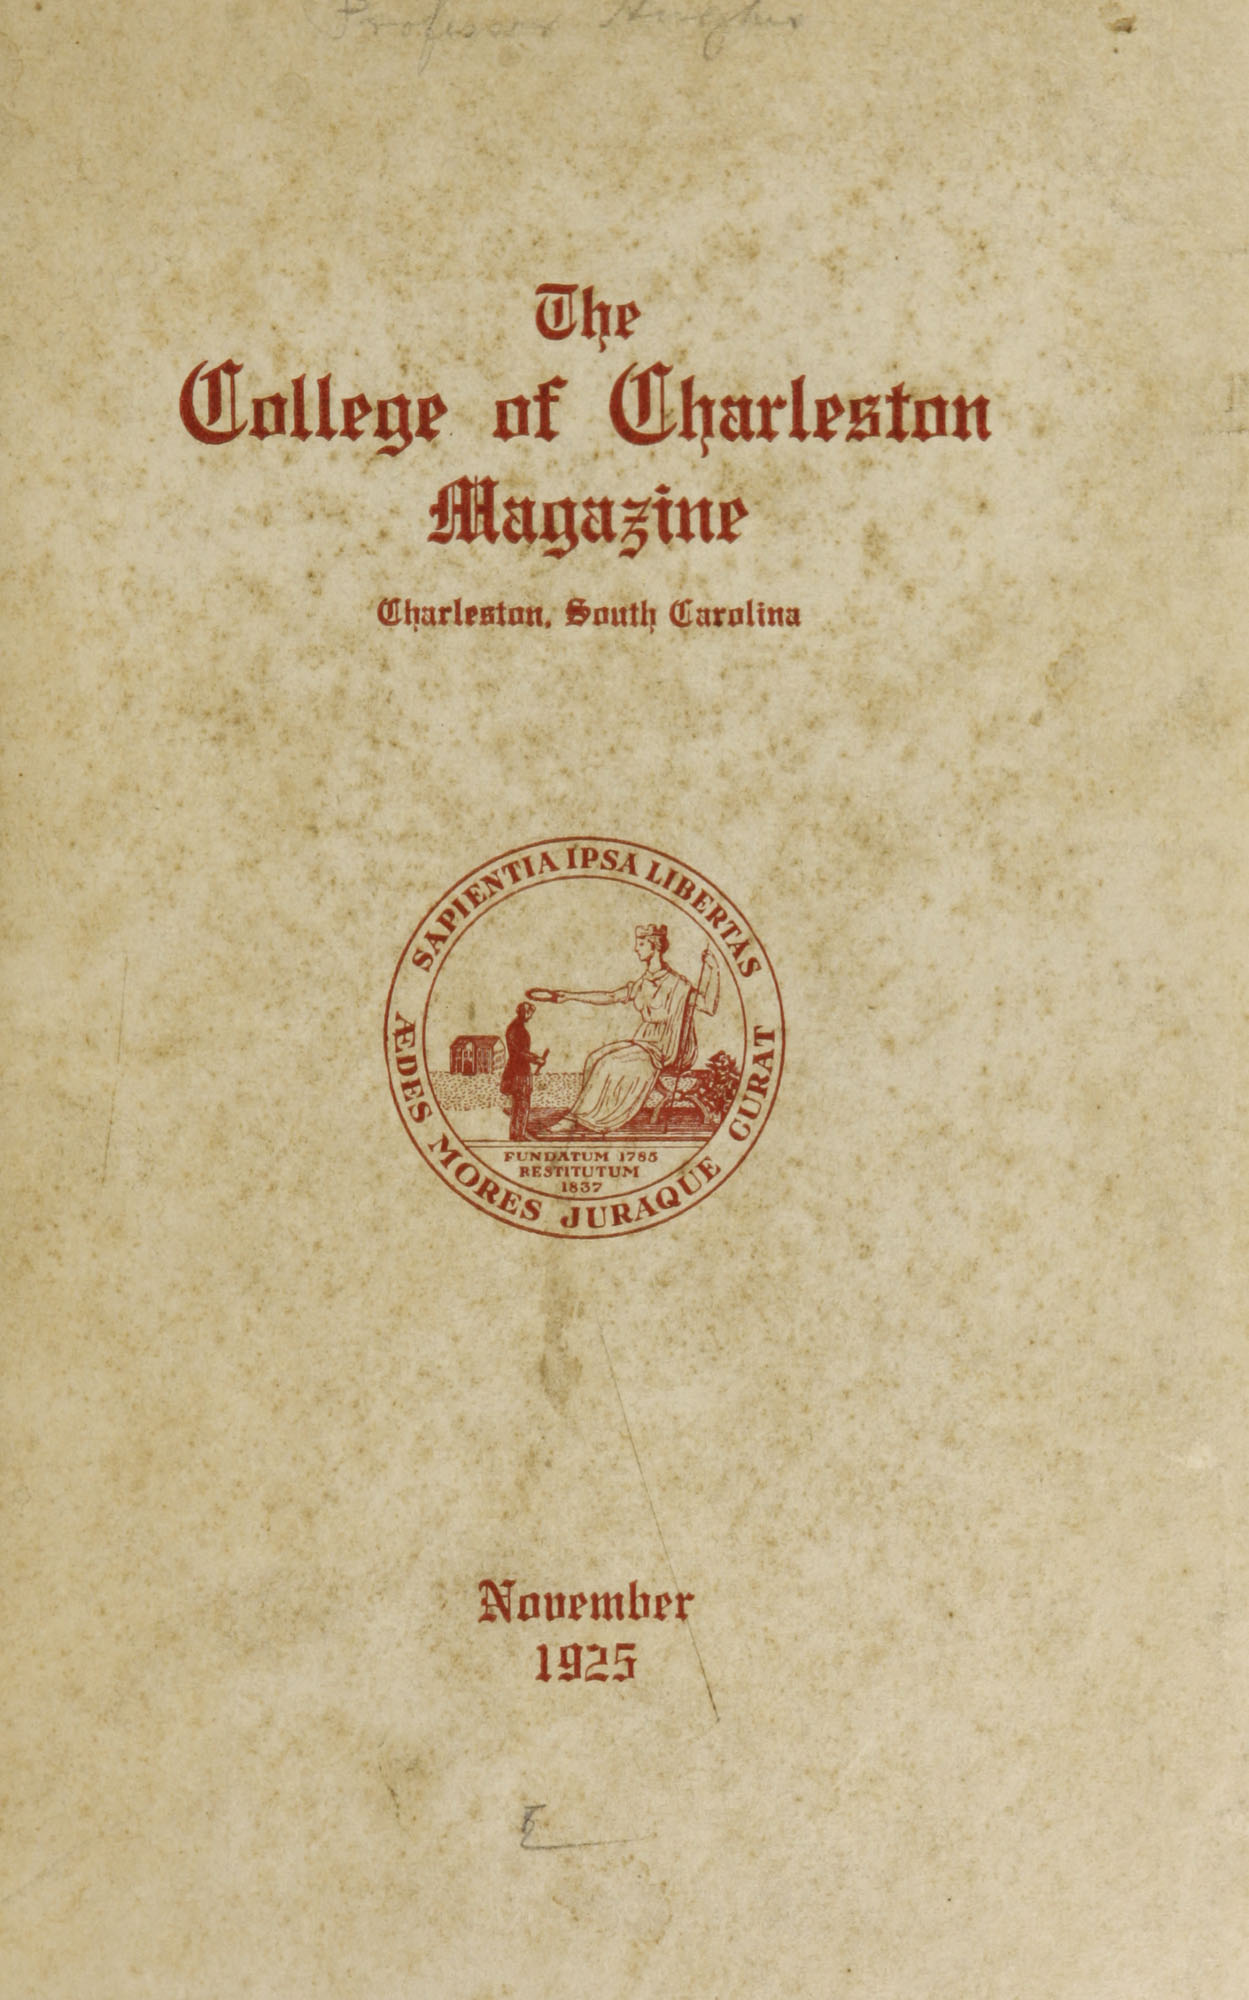 College of Charleston Magazine, 1925-1926